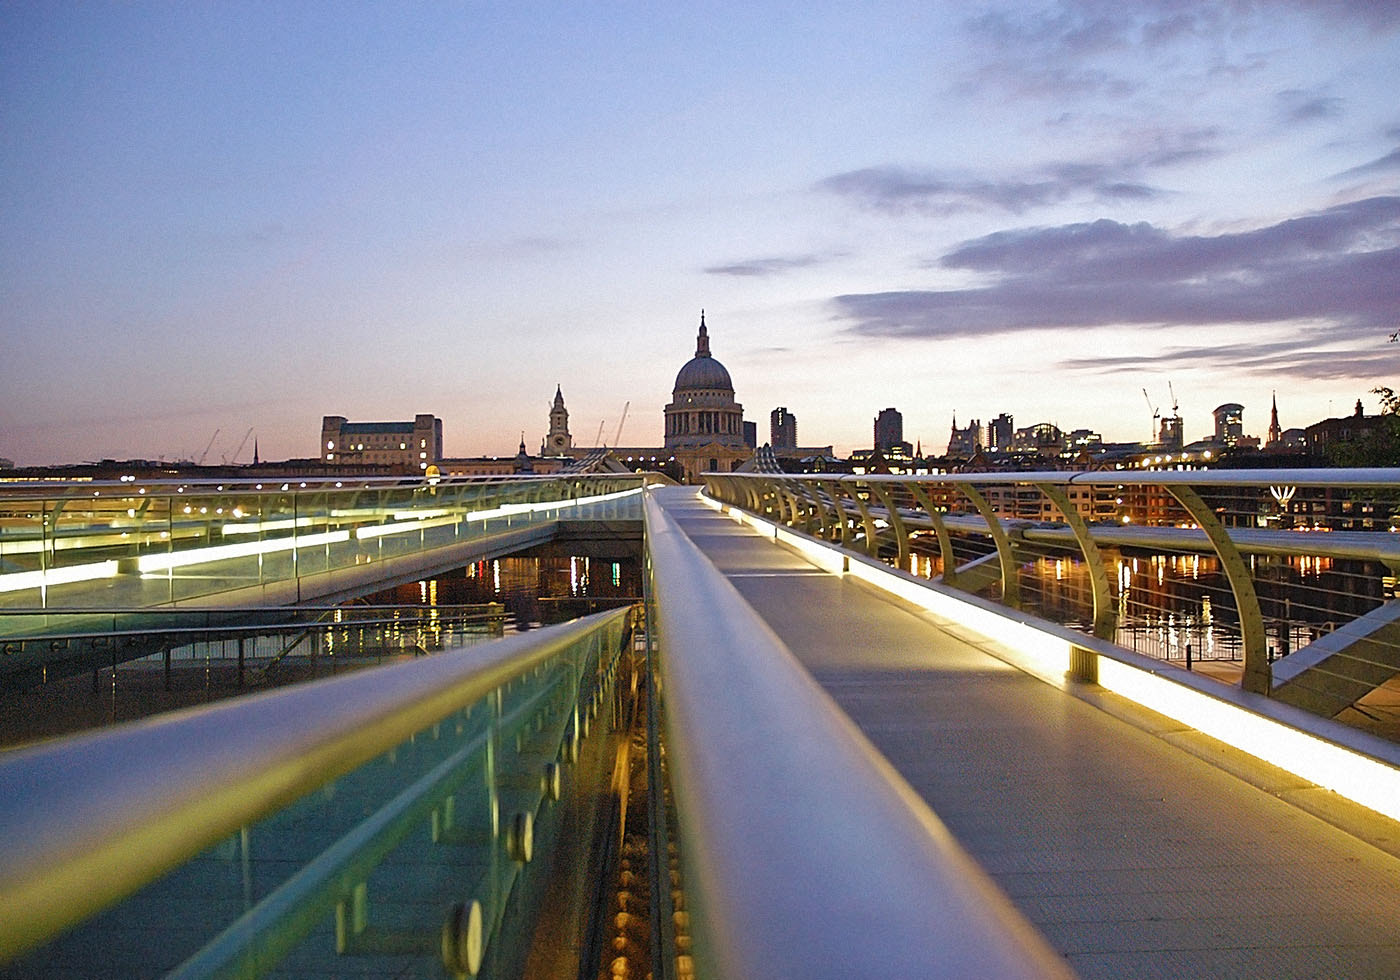 Photograph millennium bridge by Paal in Droom on 500px